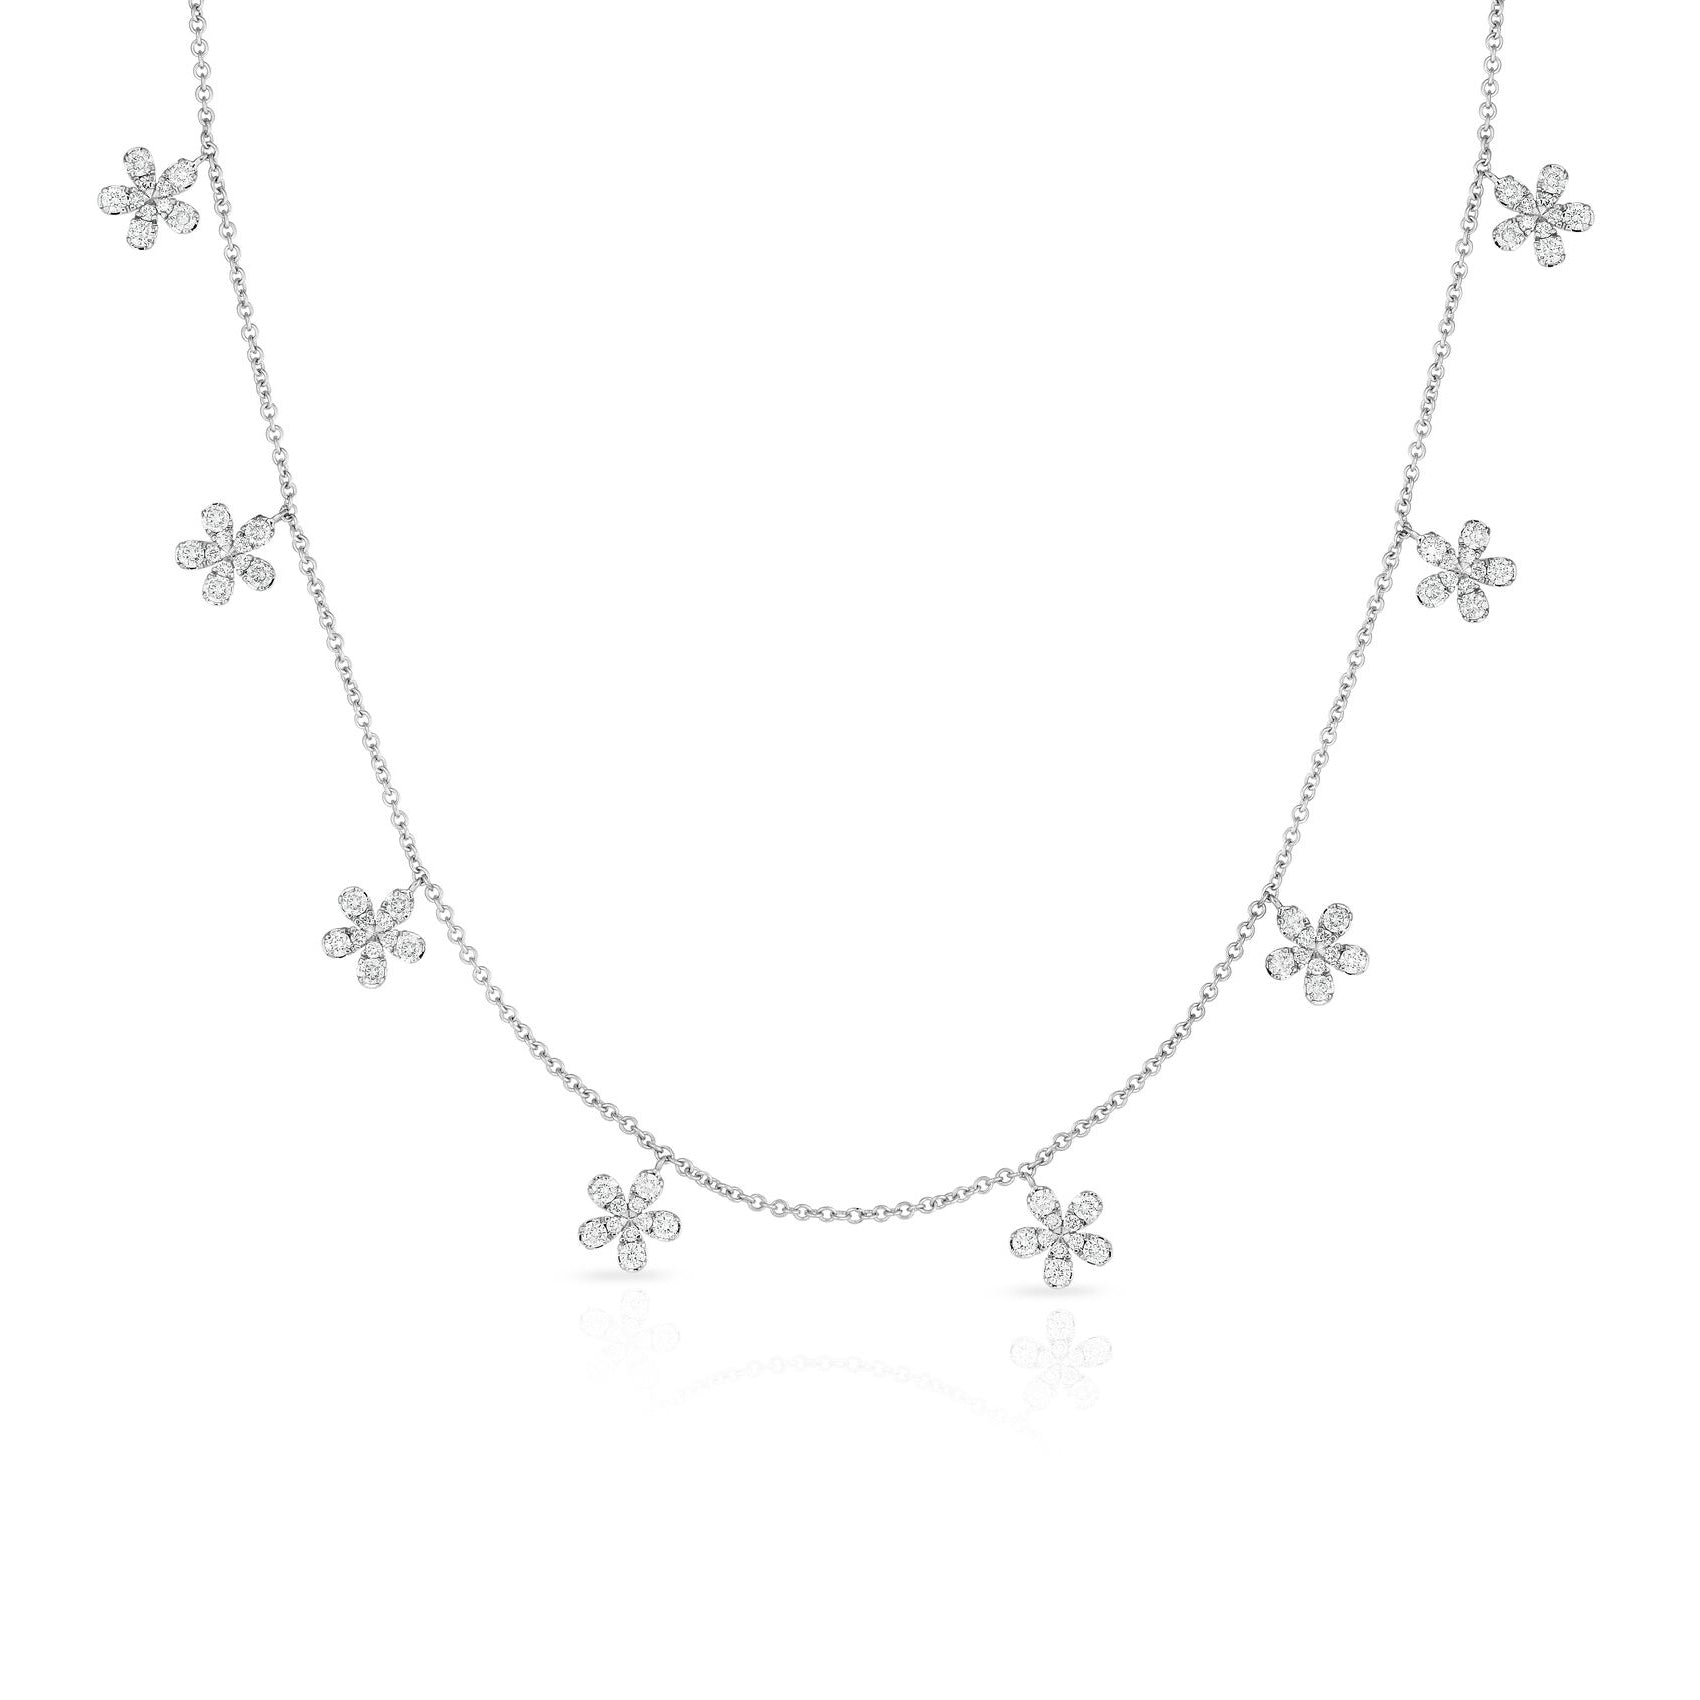 Dangling Diamond Flowers Necklace, 14K White Gold